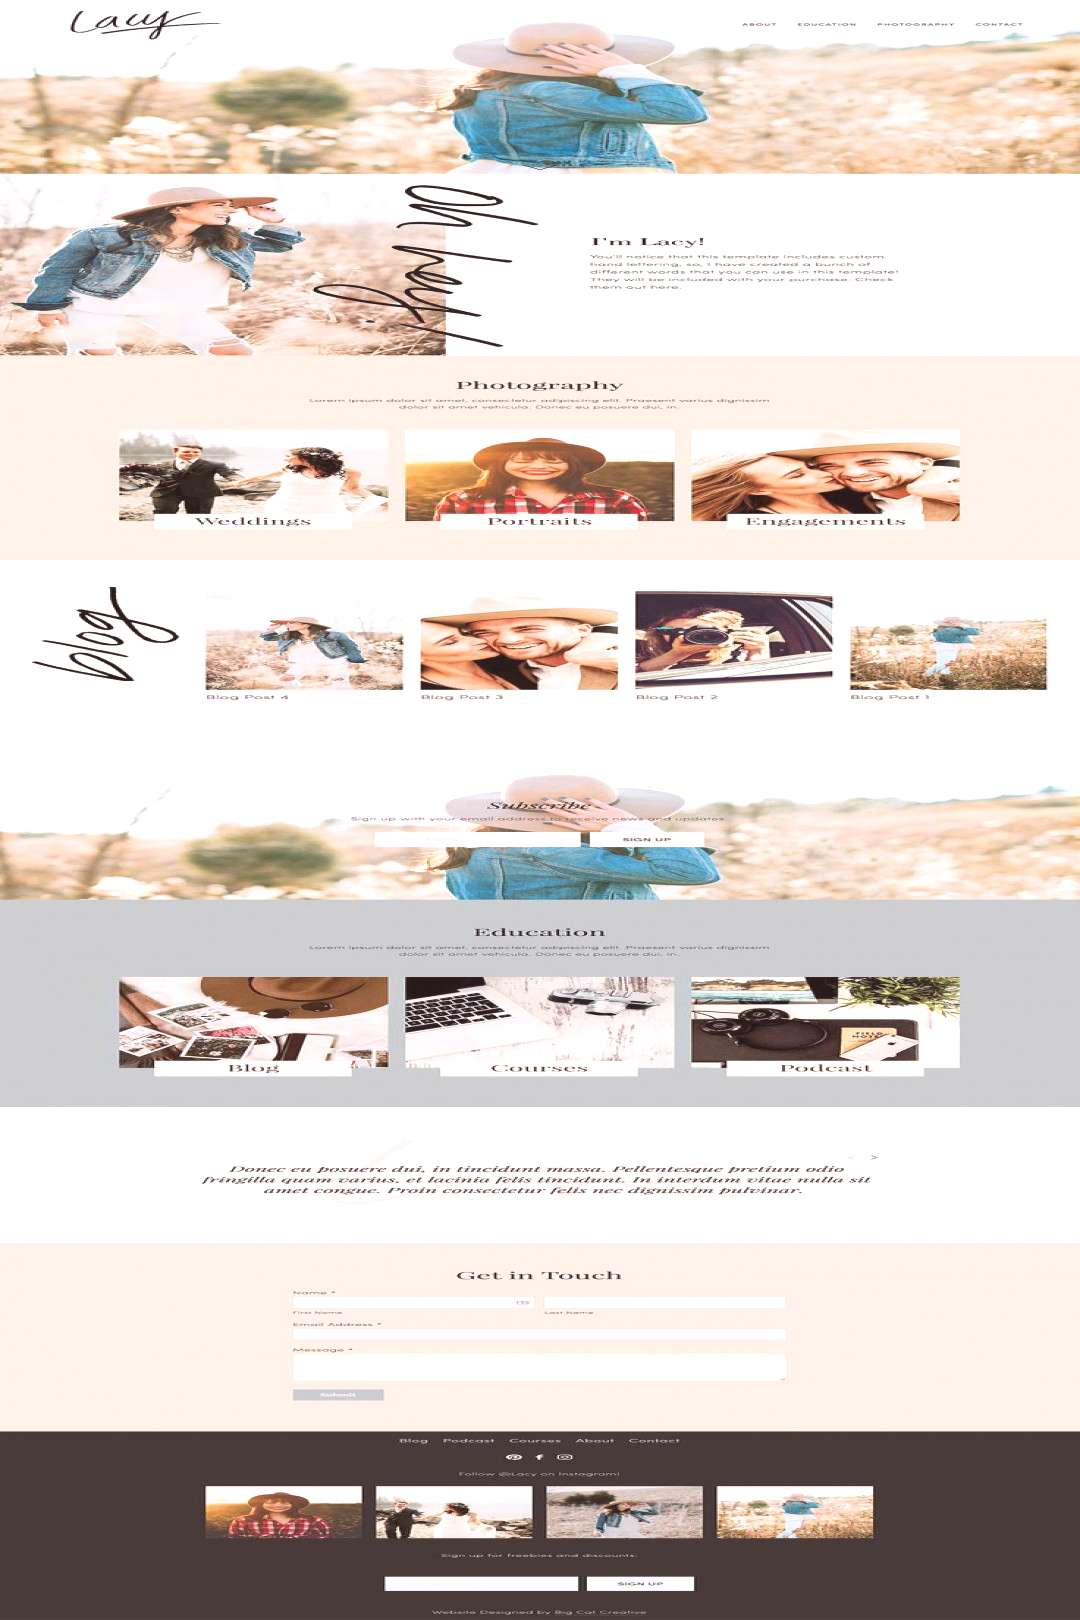 Squarespace Template Lacy The Lacy Squarespace Template Kit is a feminine and modern design, with